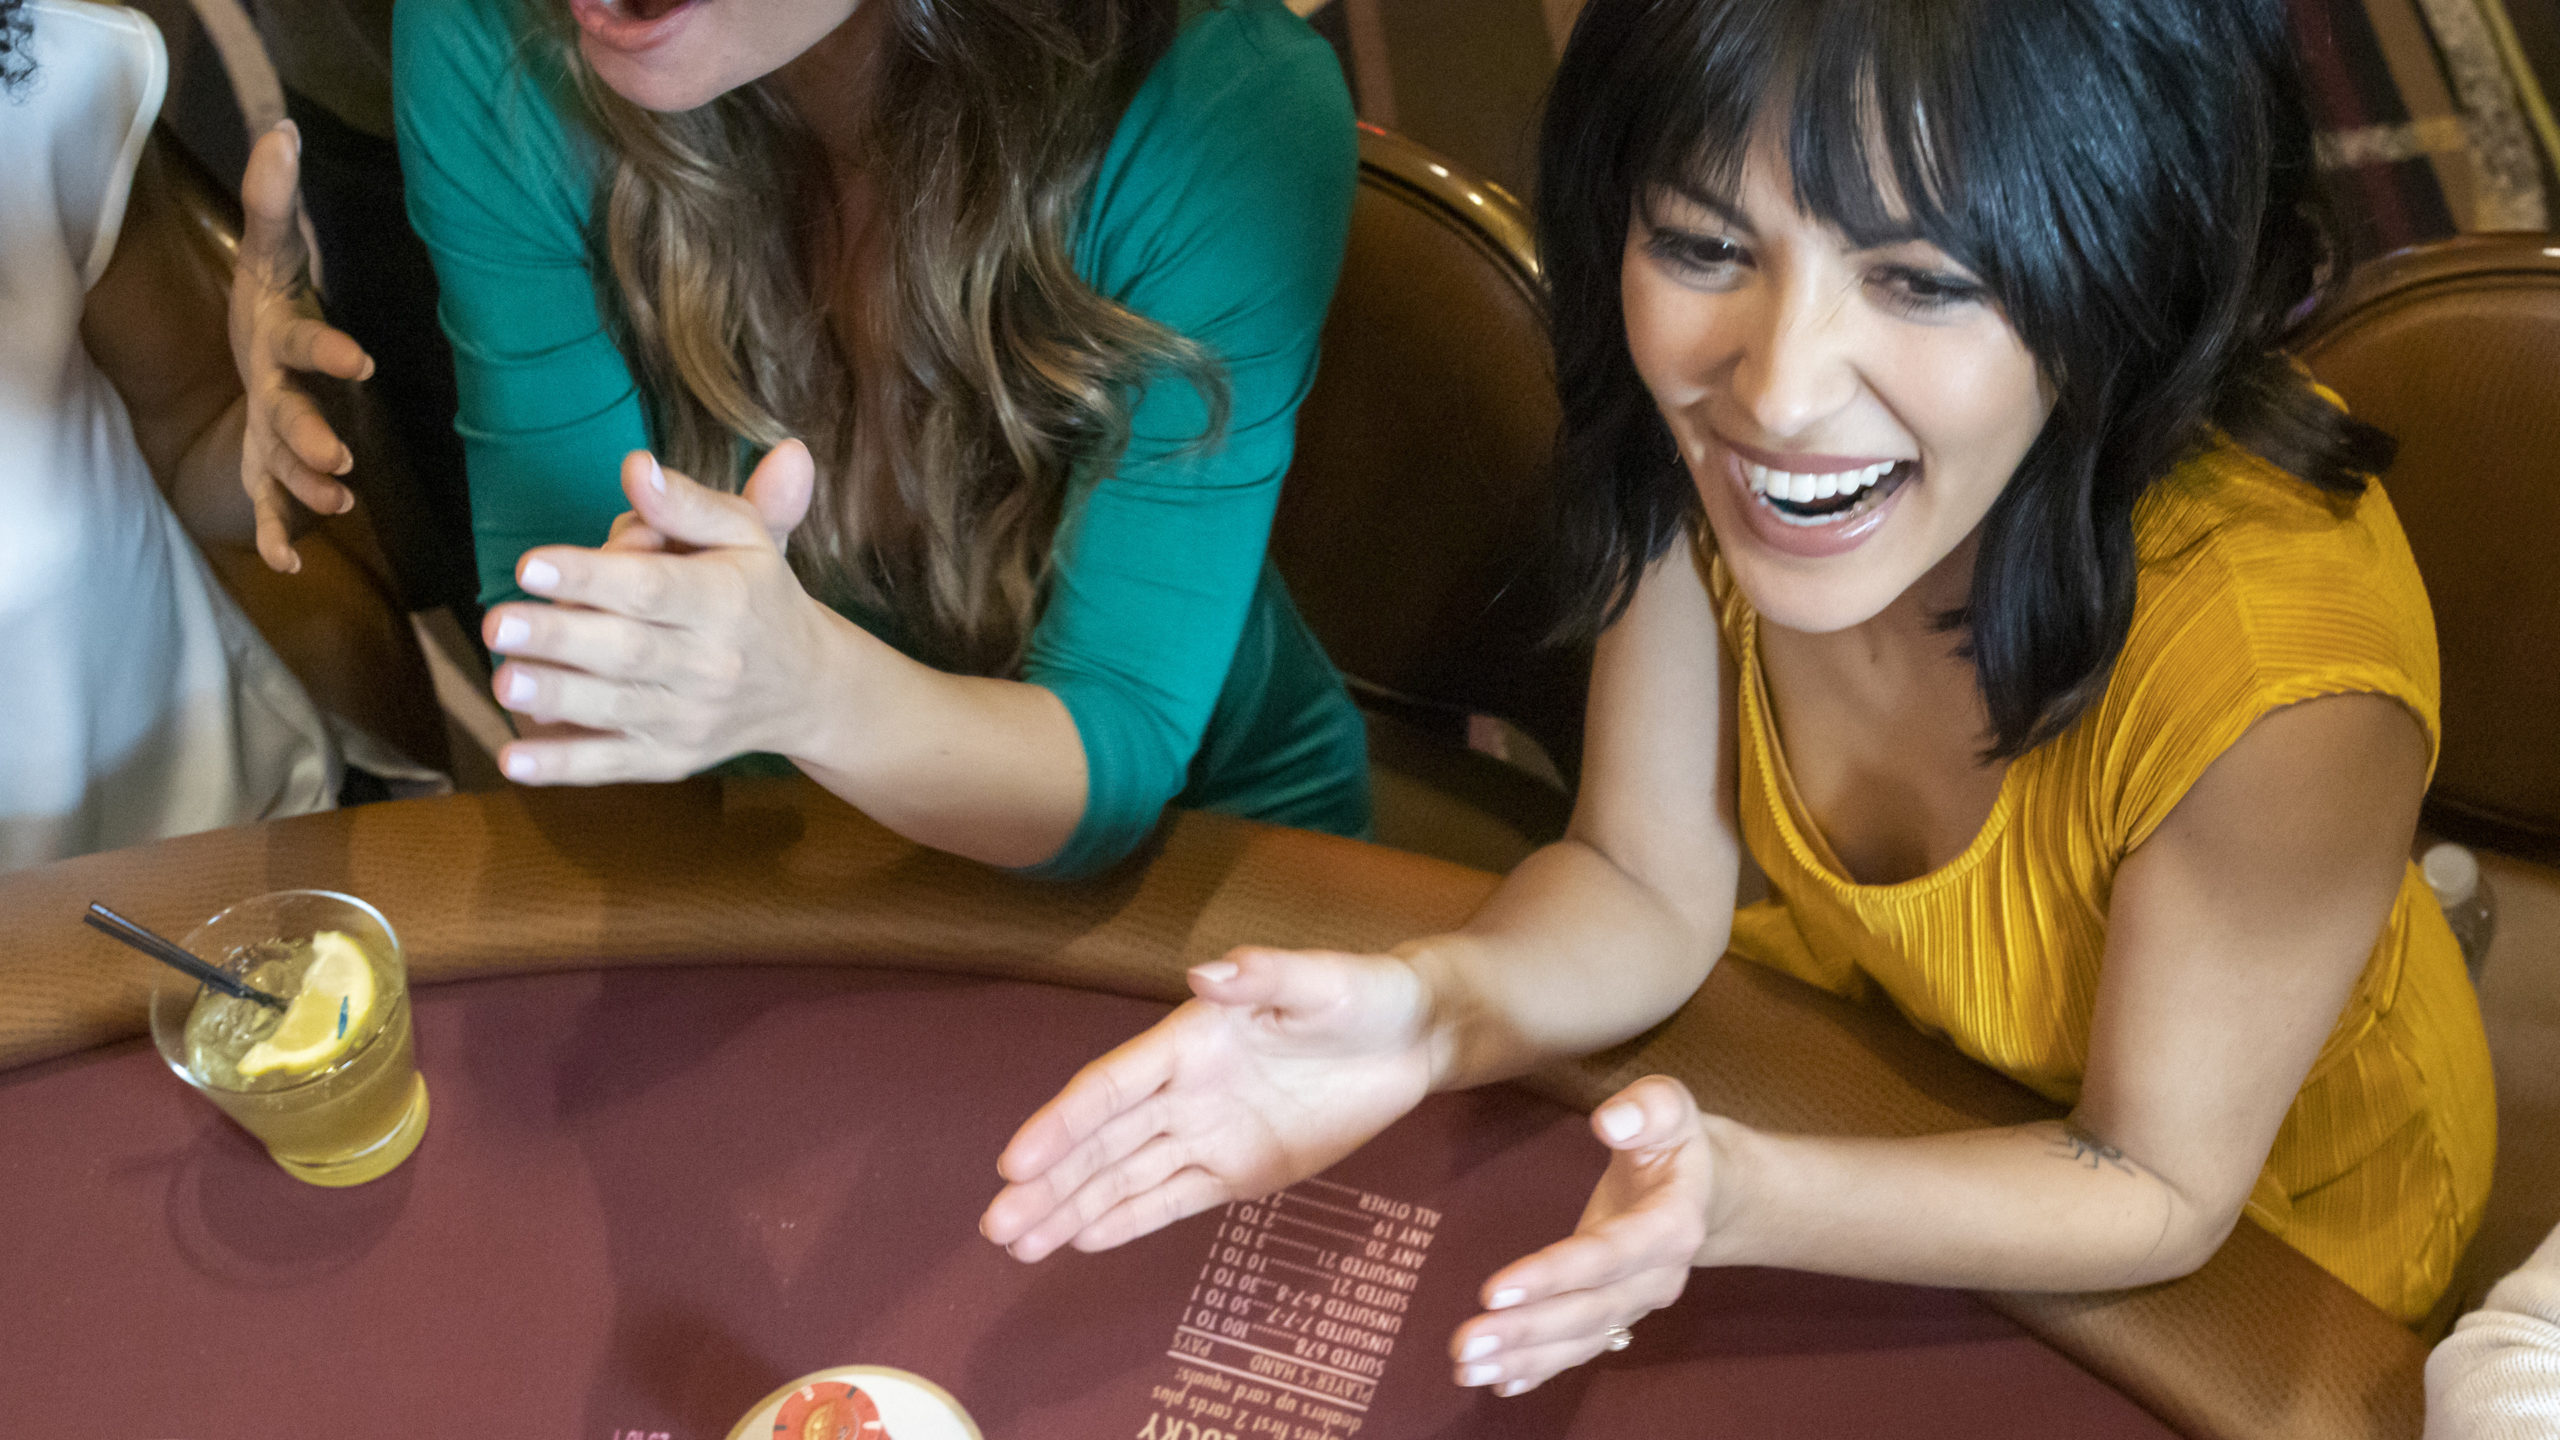 Woman laughing and clapping her hands at a Pai Gow Poker table